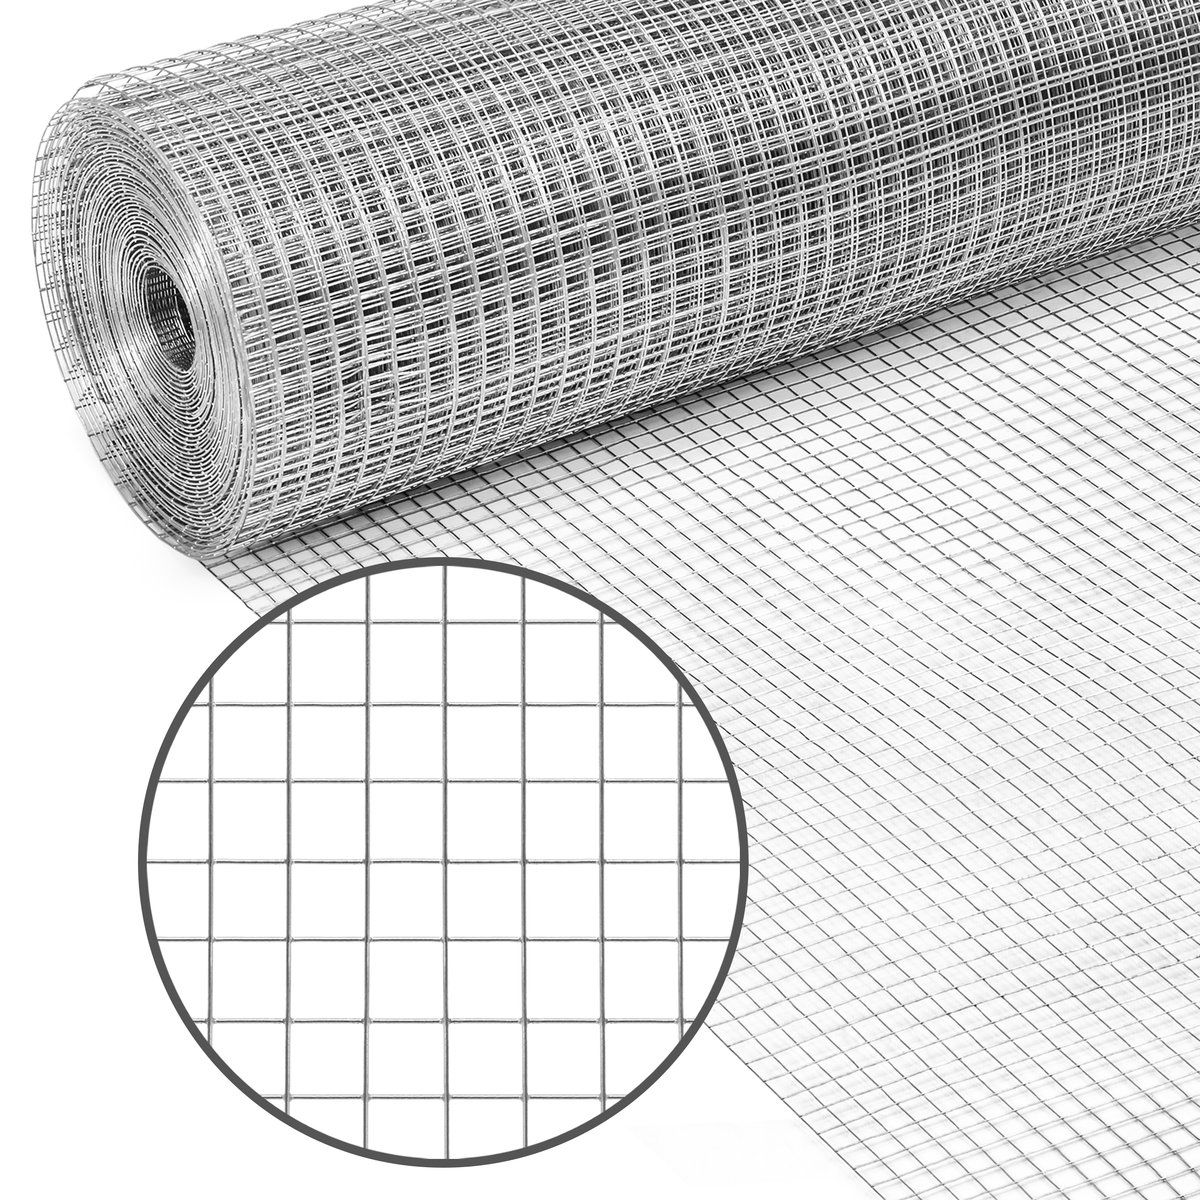 3x50ft Multipurpose 19 Gauge Galvanized Welded Chicken Wire Mesh Fence In 2020 Wire Mesh Fence Mesh Fencing Hardware Cloth